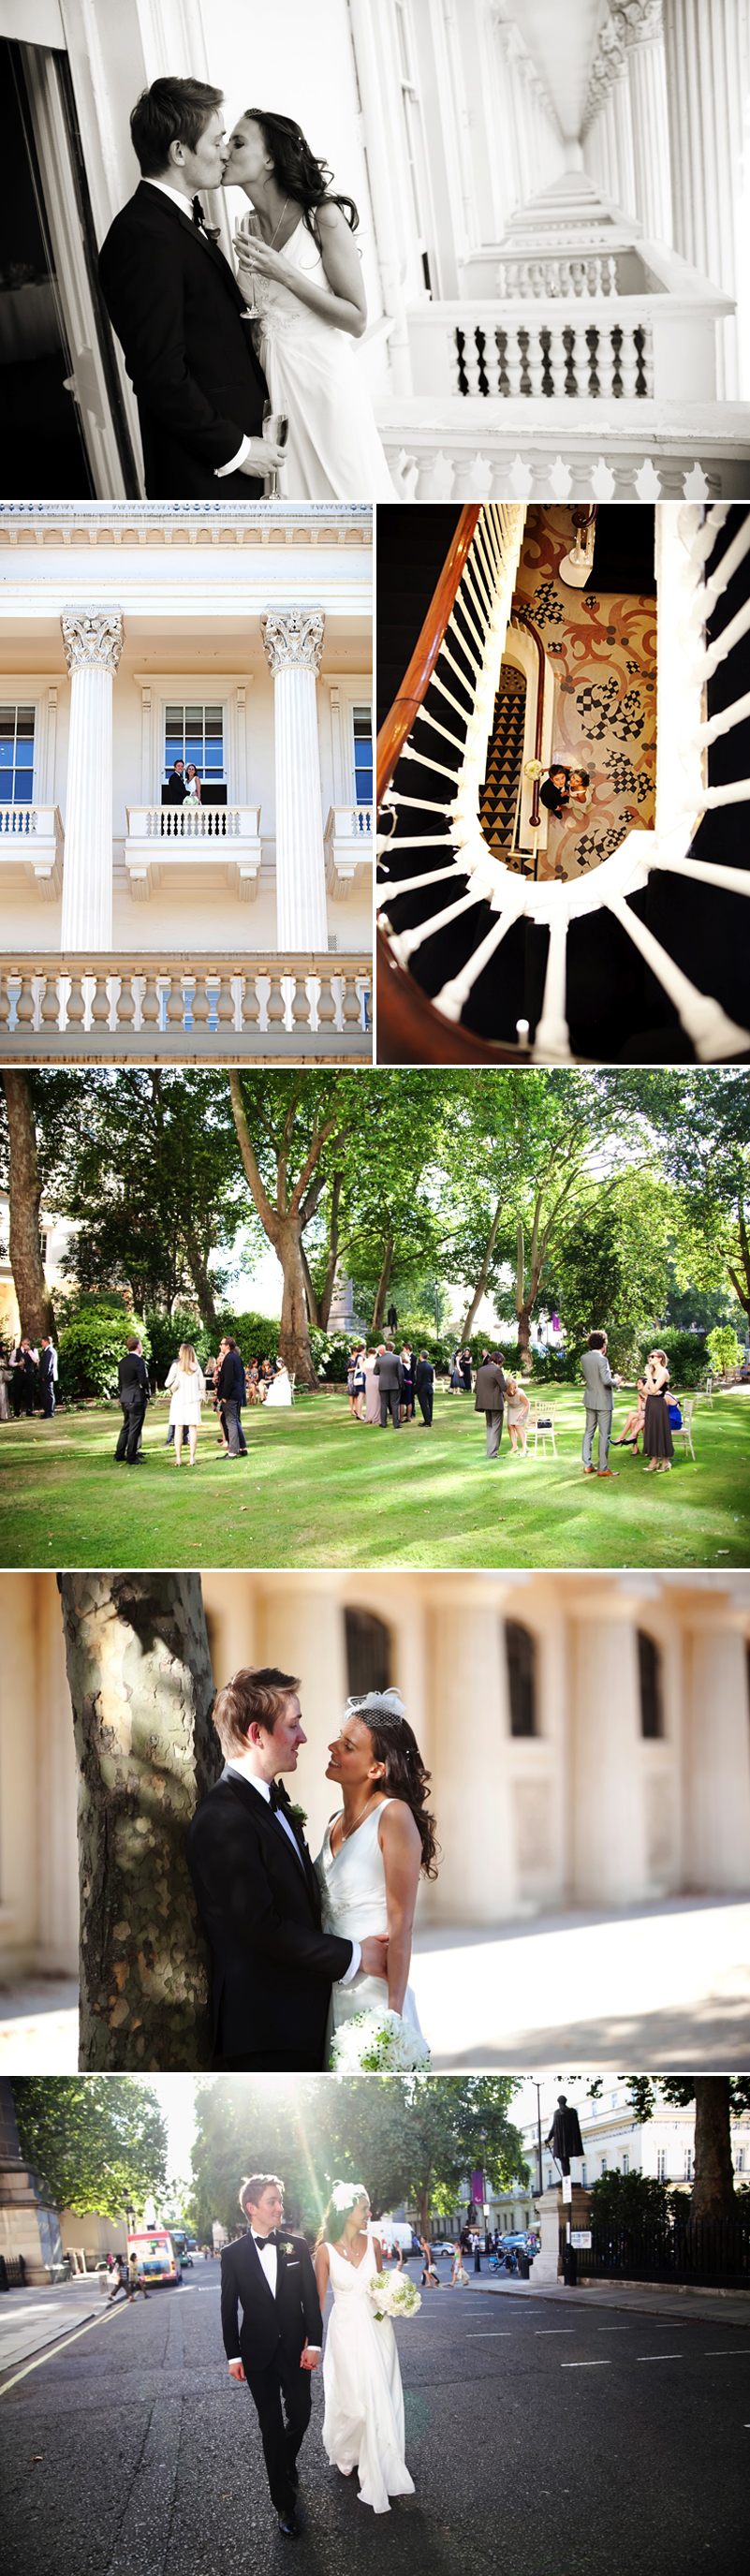 wedding-venues-in-london-institute-of-contemporary-arts-elegant-modern-wedding-005